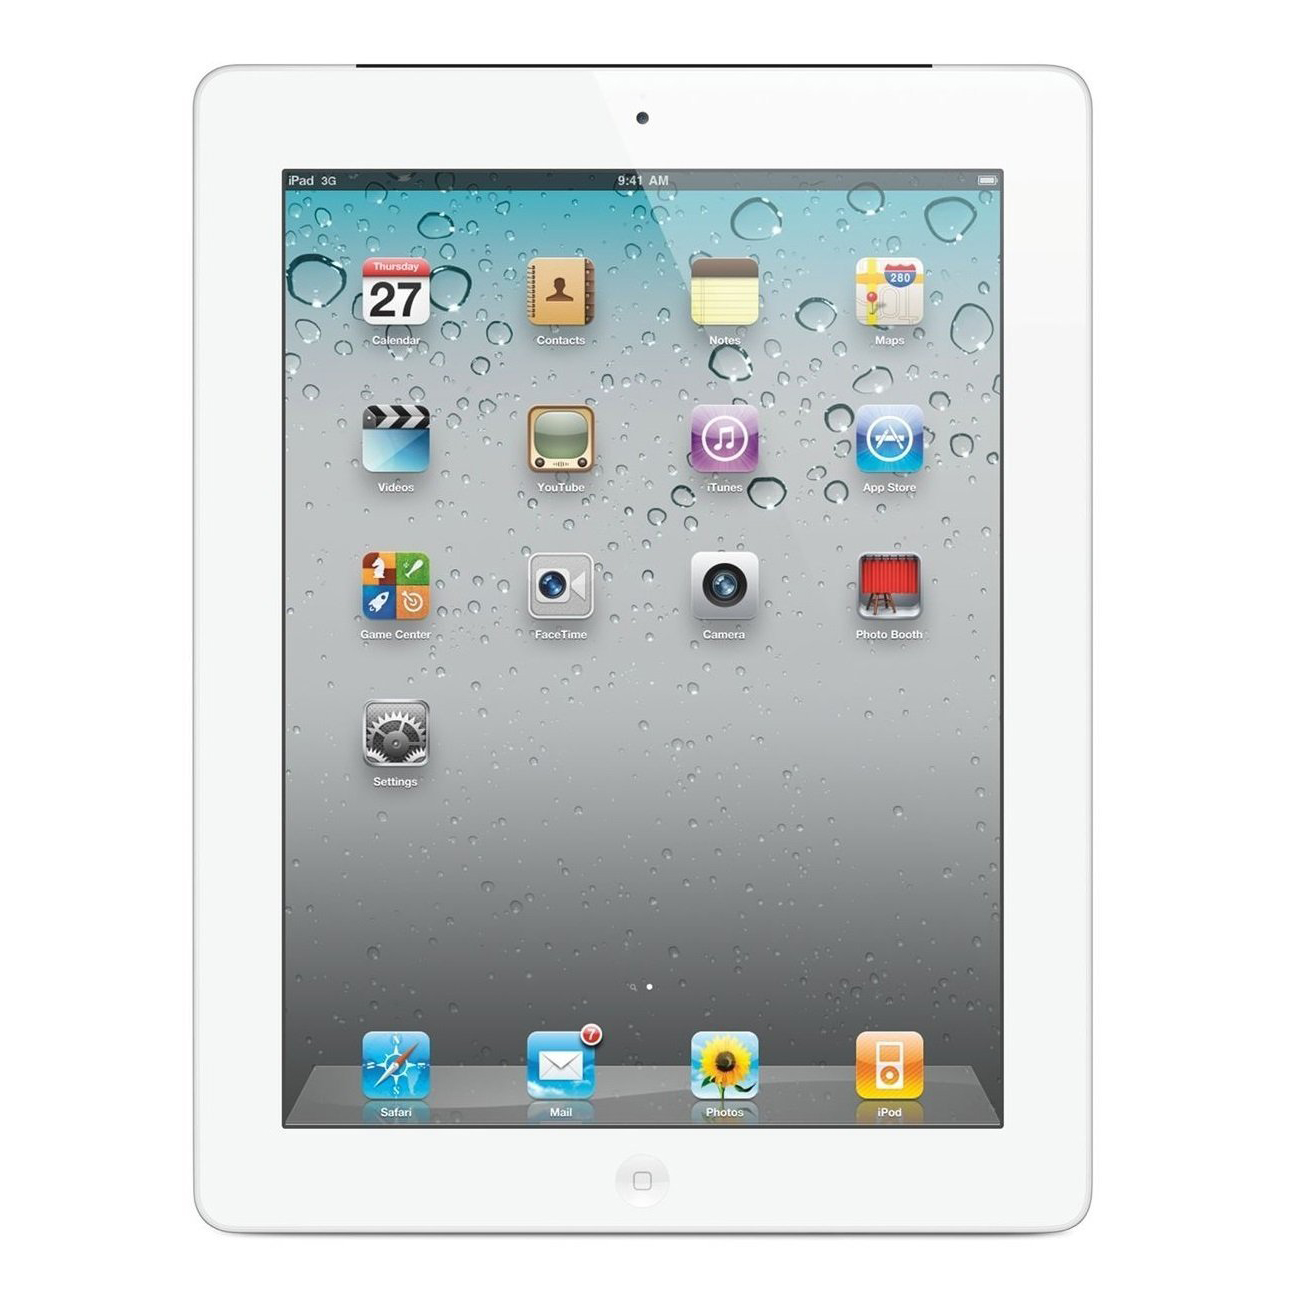 "Refurbished Apple Ipad 2 16GB 9.7"" Touchscreen Wi-Fi Dual Cameras Tablet - White - MC979LLA"